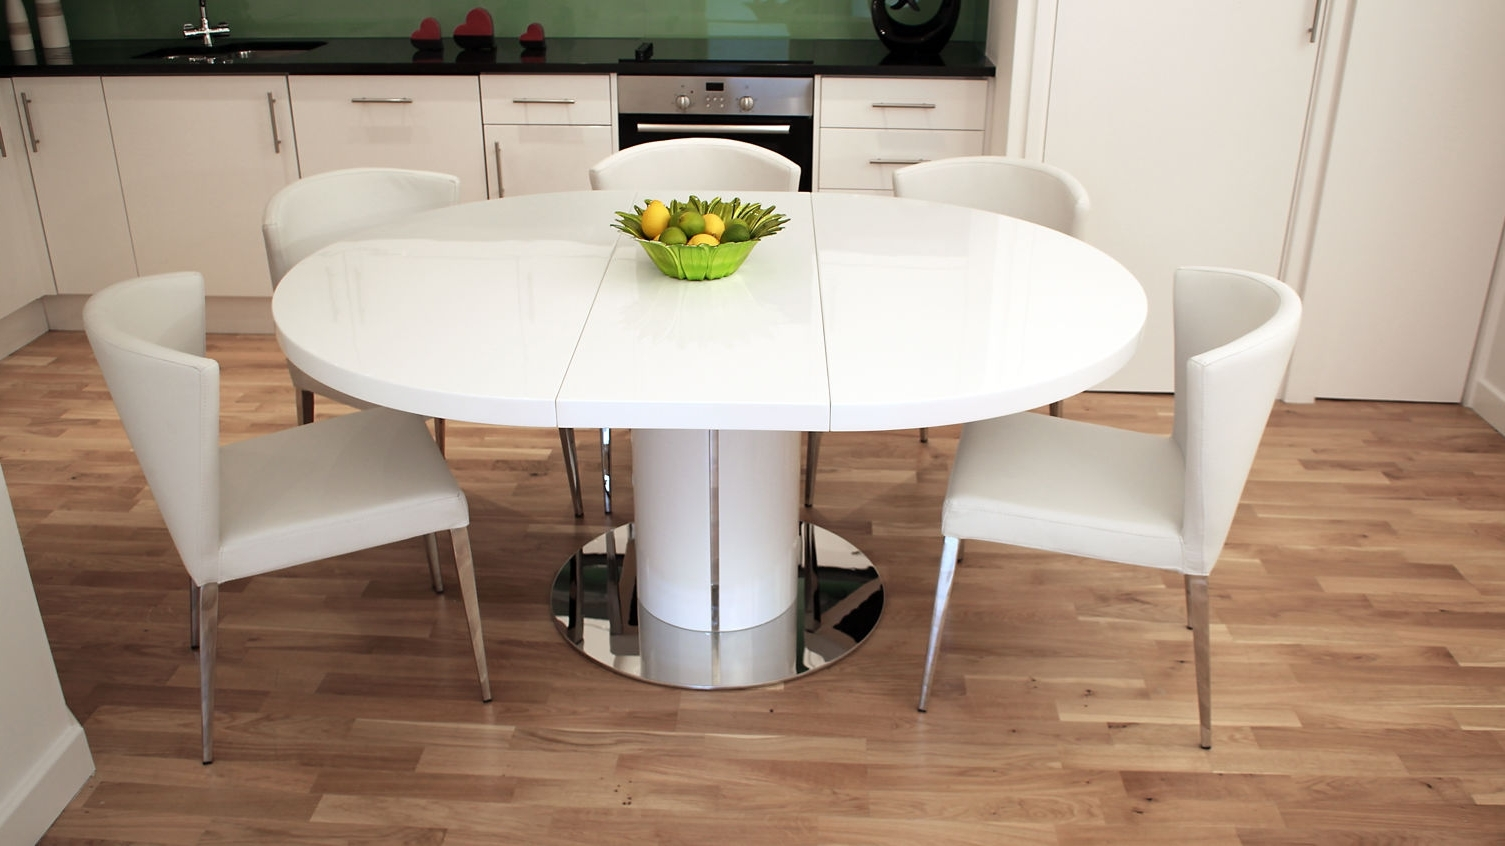 Trendy 6 Seat Round Dining Tables Throughout Diy Painting White Round Dining Table — The Home Redesign (View 16 of 25)